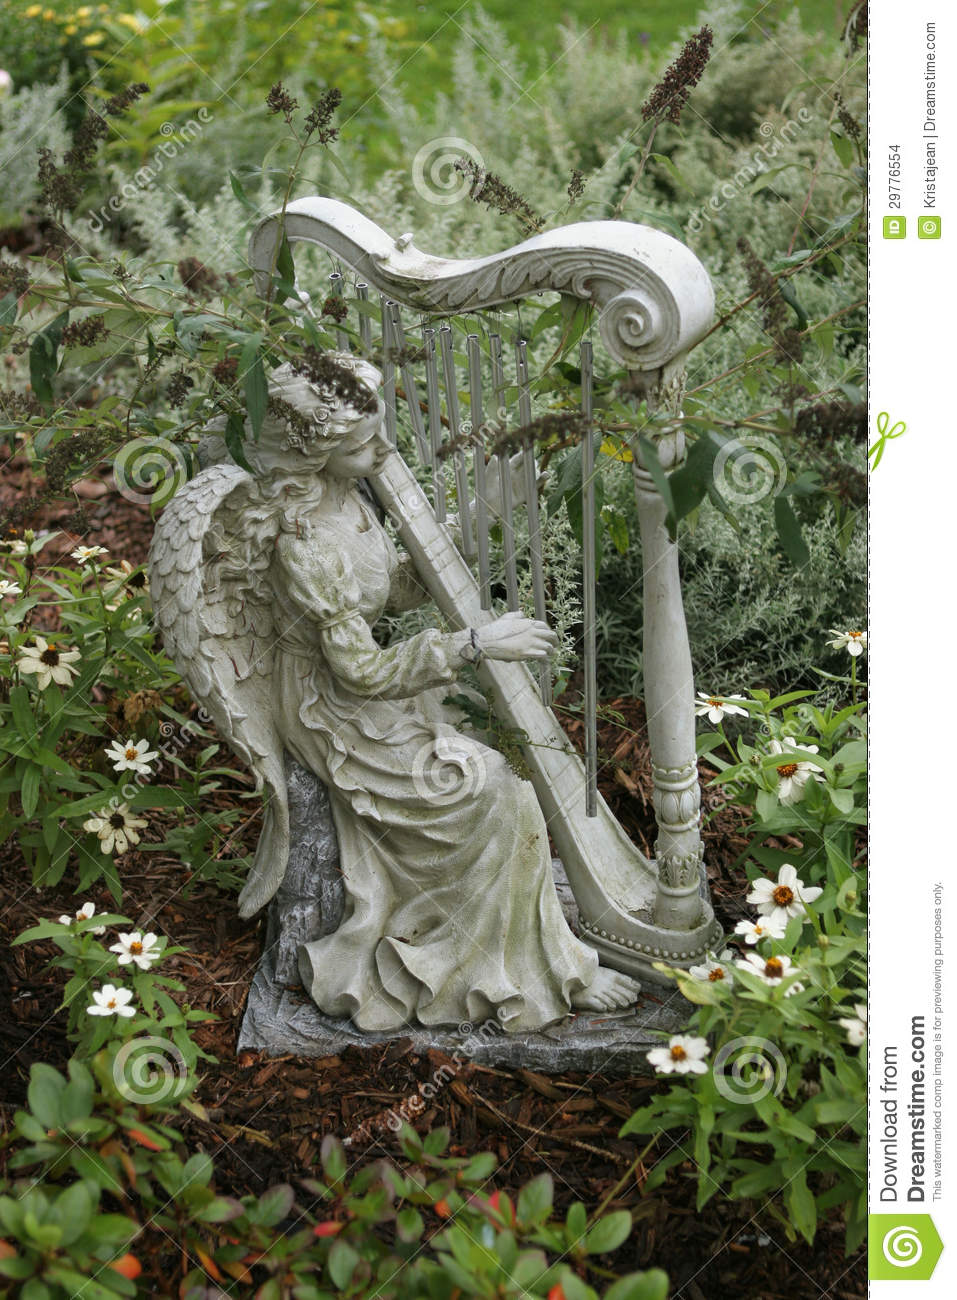 Mistyshadows2u garden angels - Garden Statue Of An Angel Playing A Harp Stock Images Image